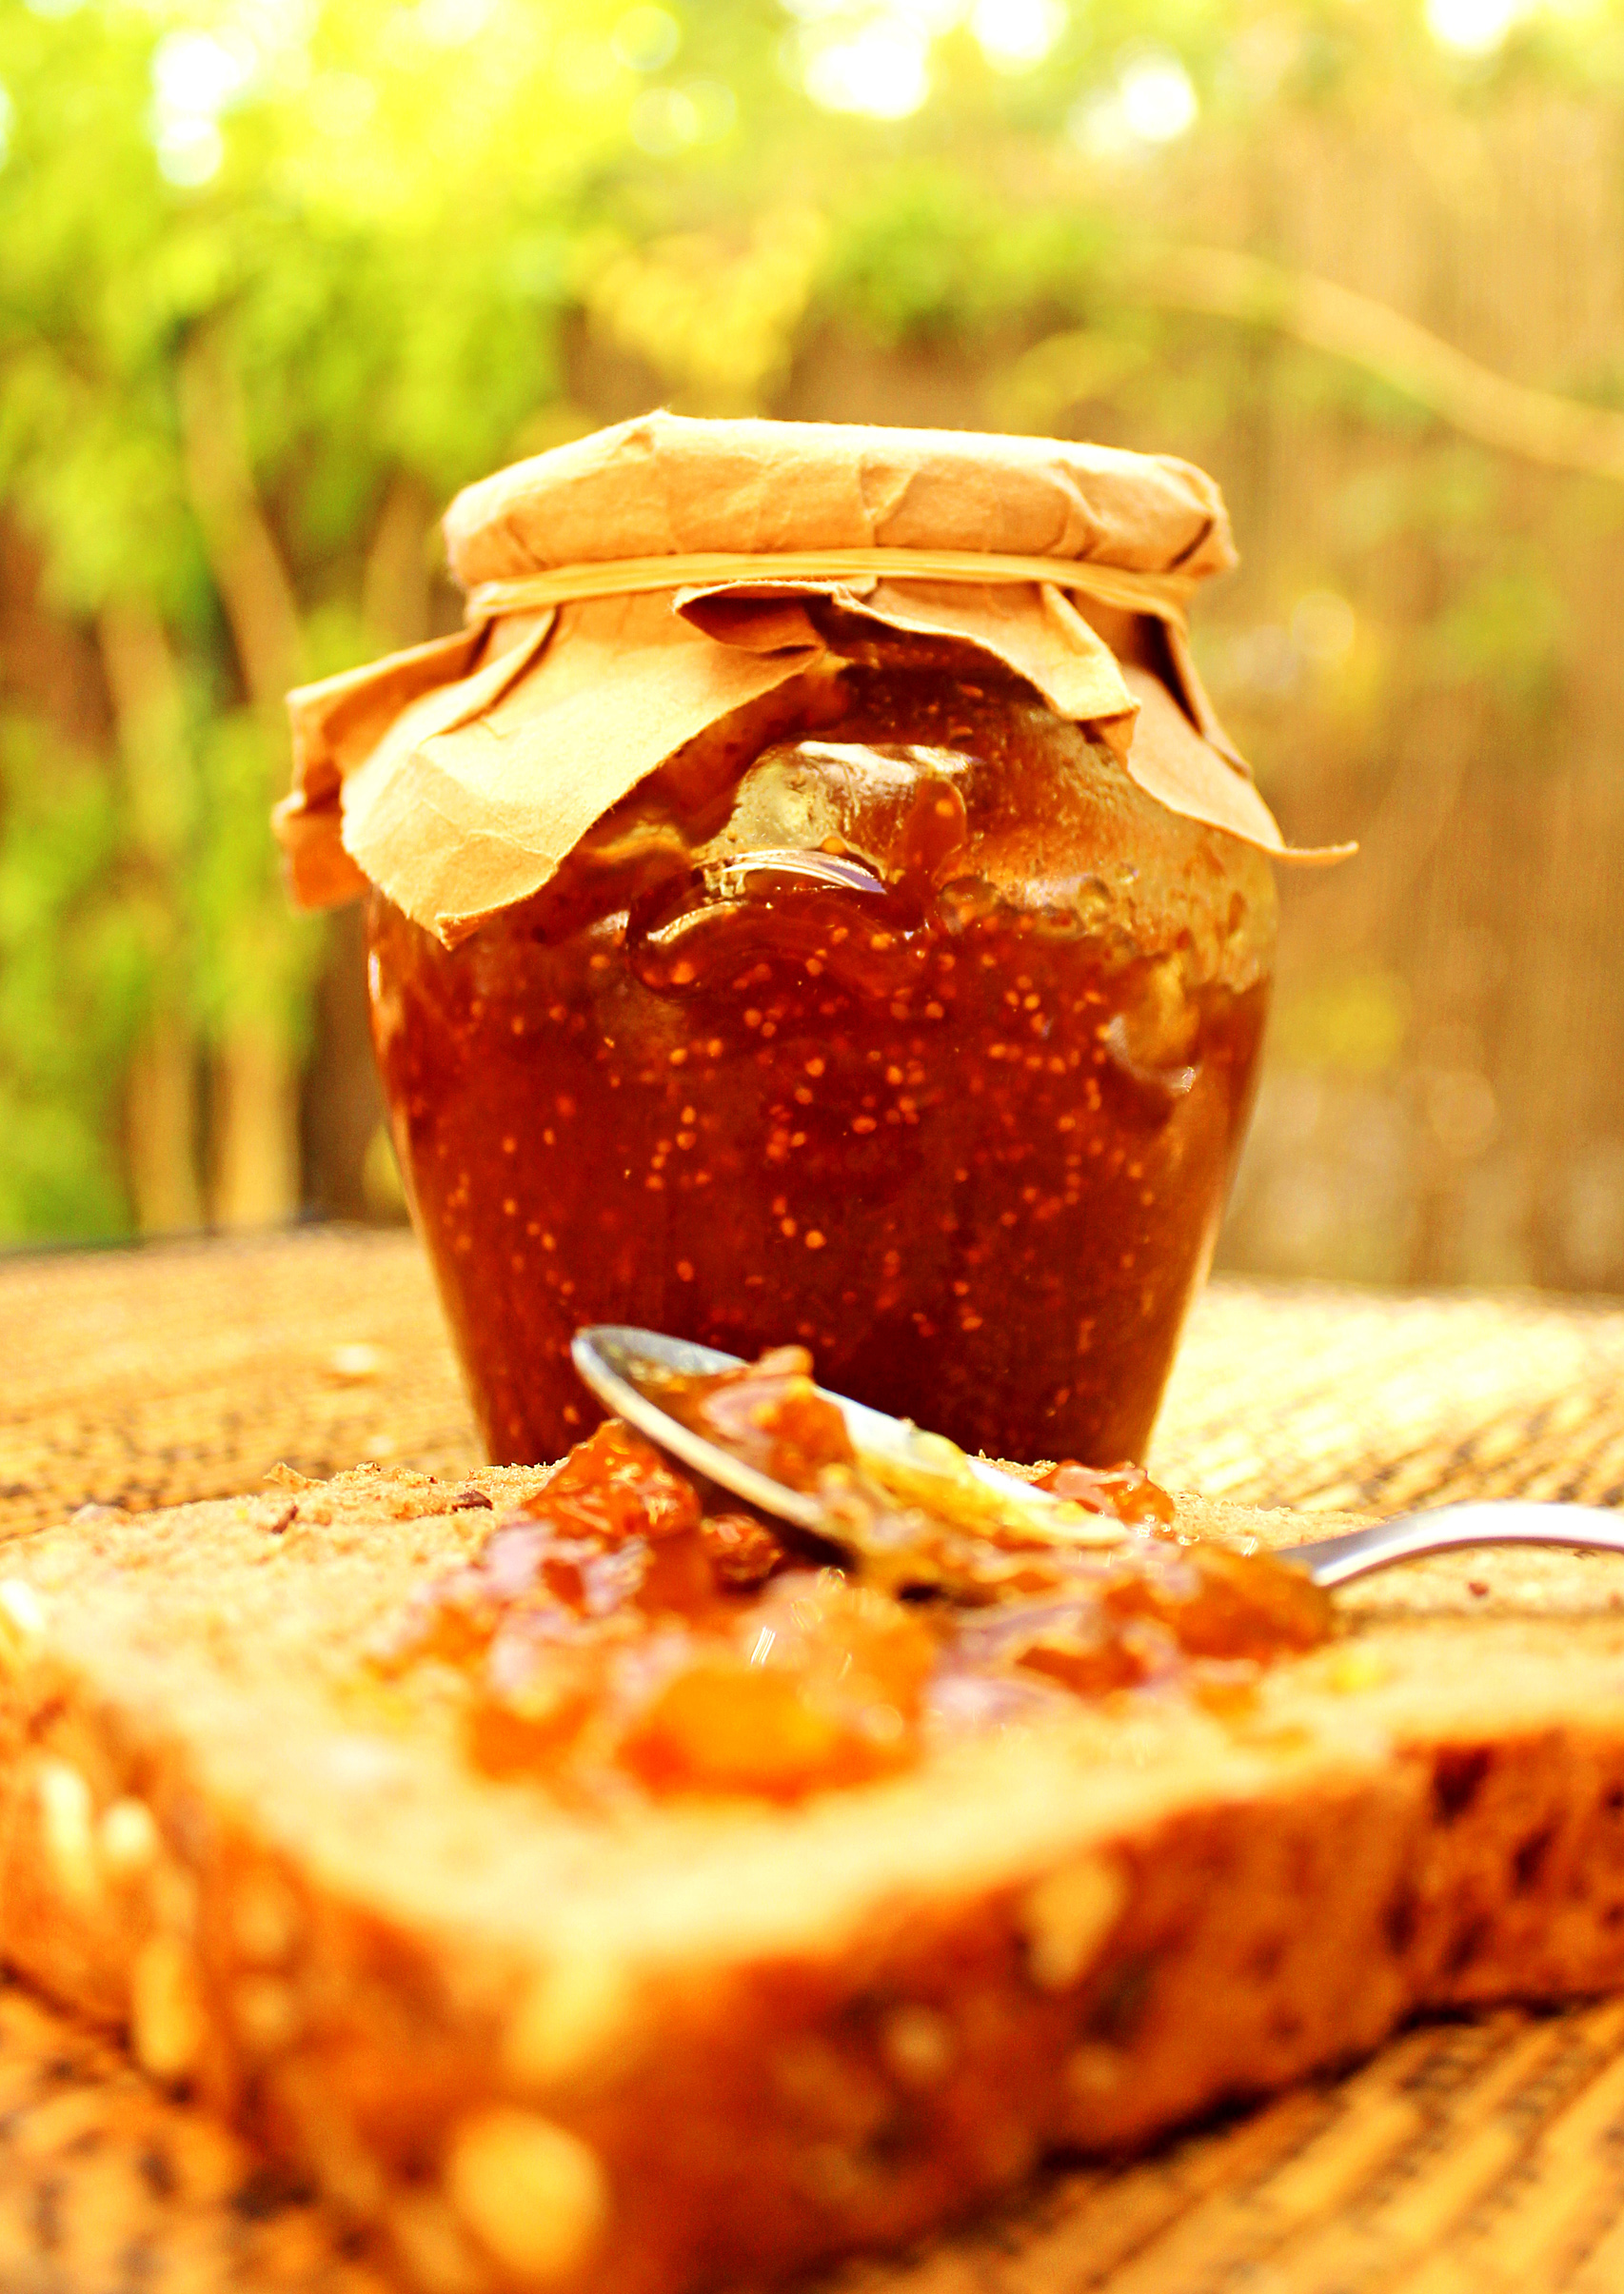 Fig jam on whole bread, Bread, Natural, Jelly, Juicy, HQ Photo